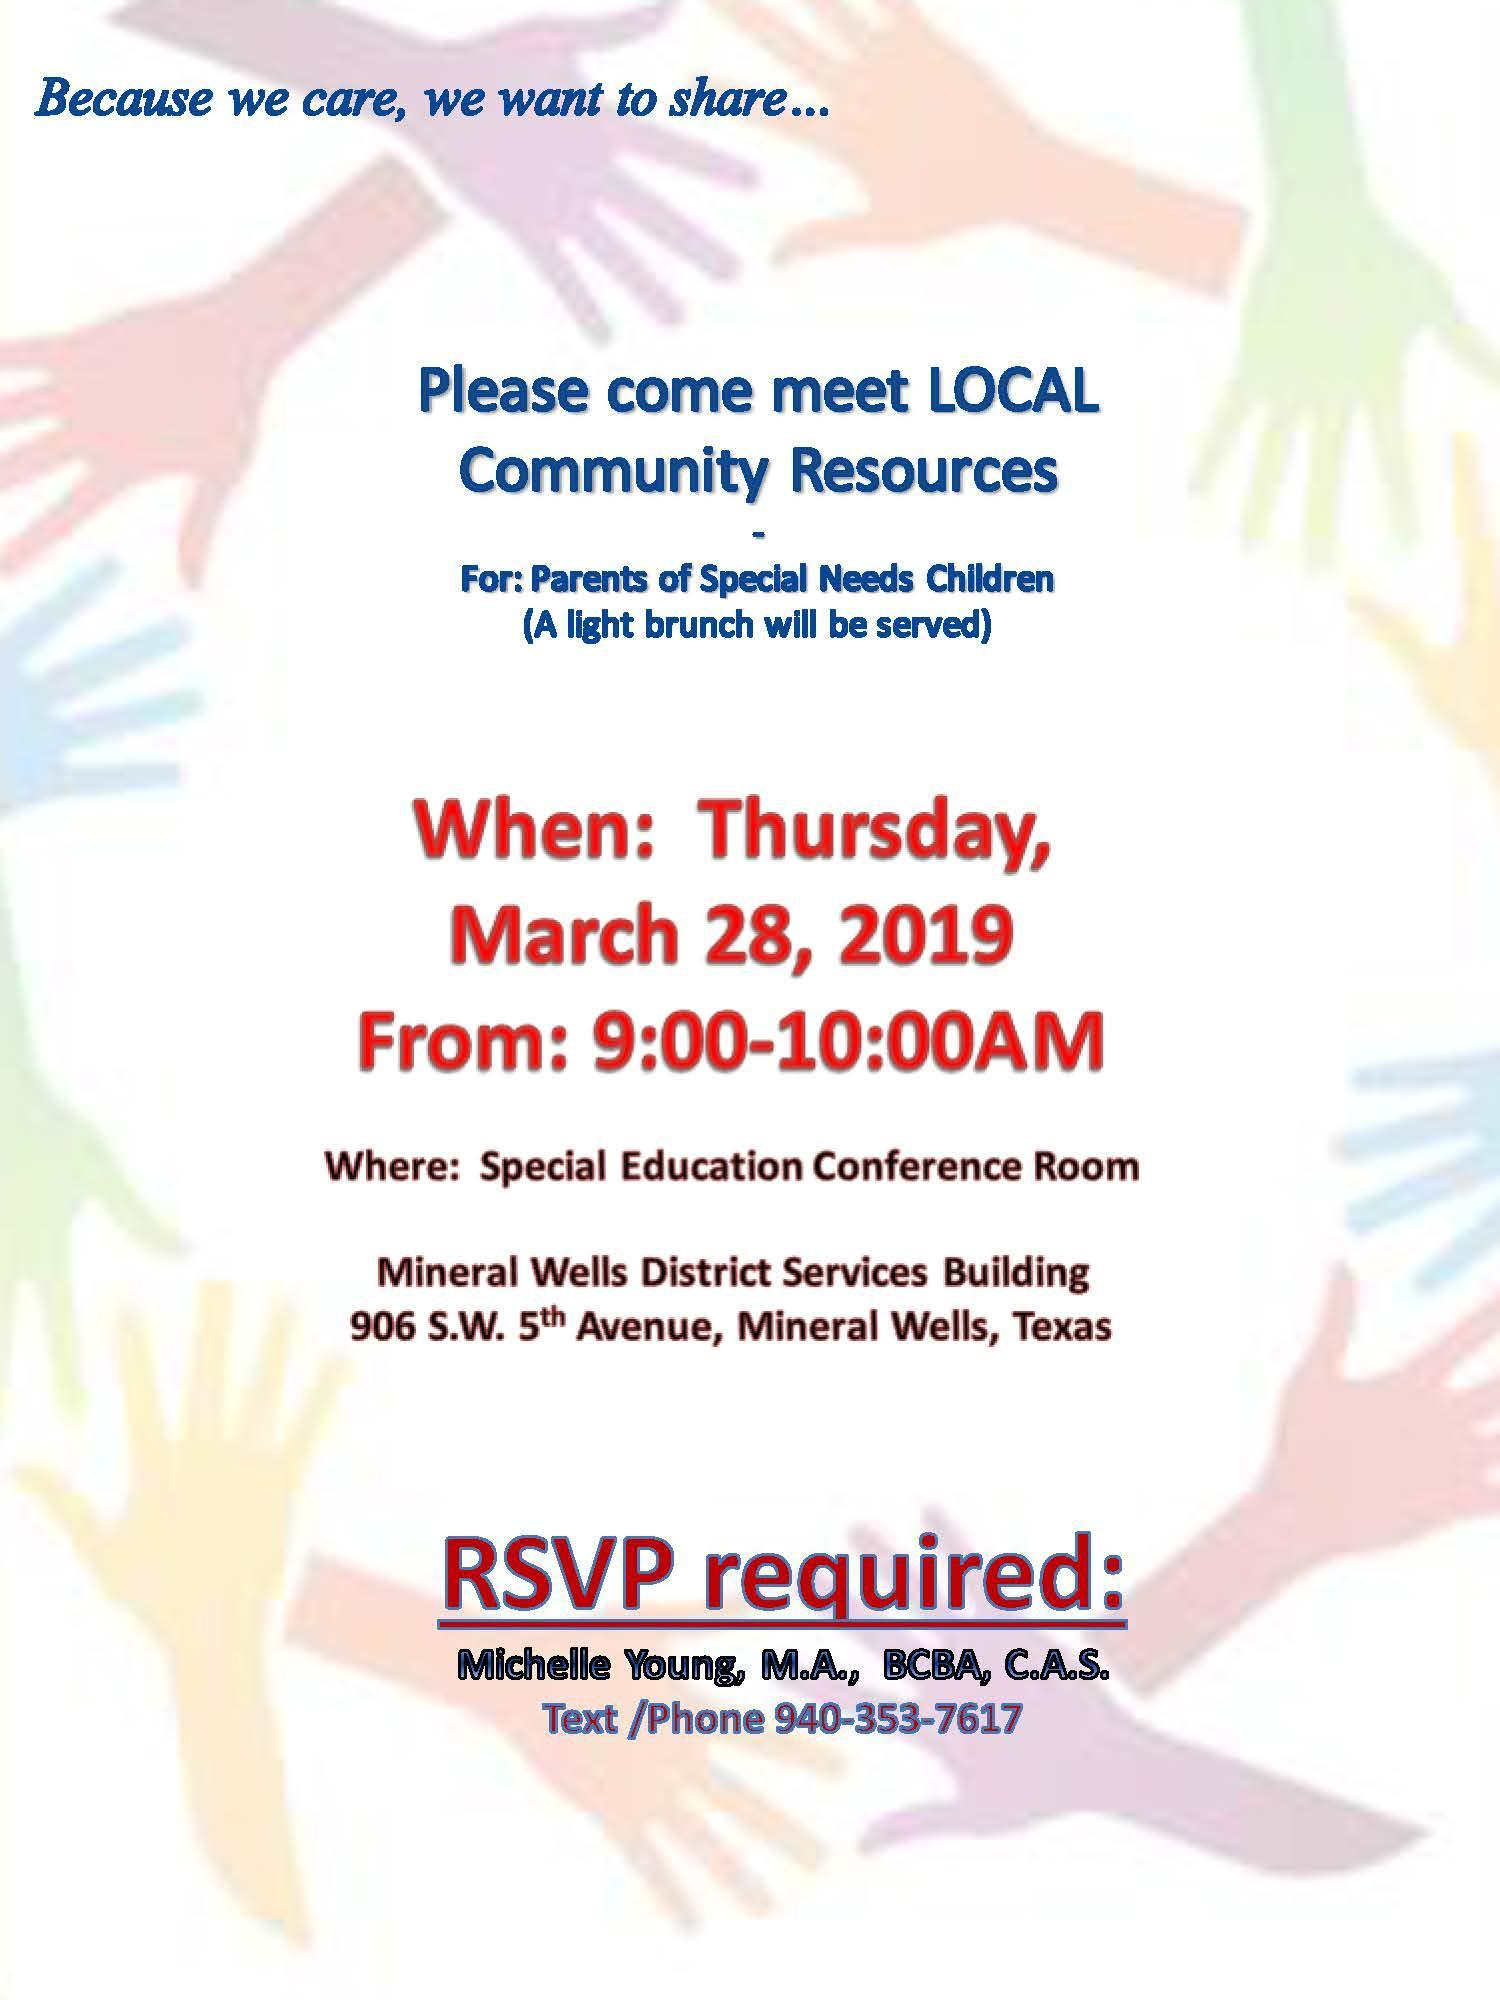 Parent Community Resource Brunch March 28th from 9-10 am